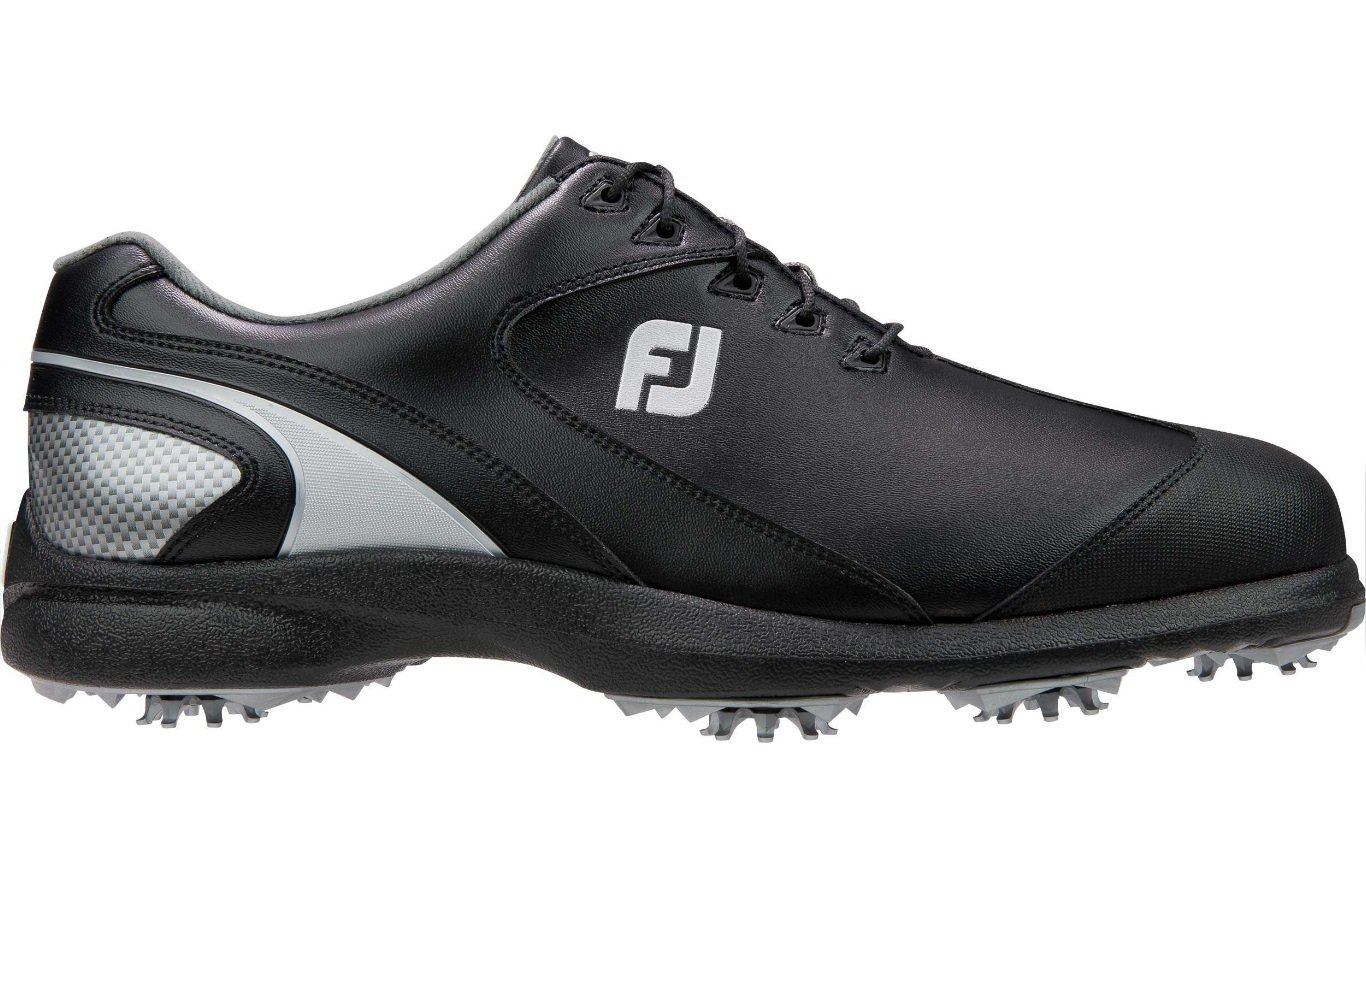 FootJoy Sport LT Golf Shoes (9.5, Black/Silver-M) by FootJoy